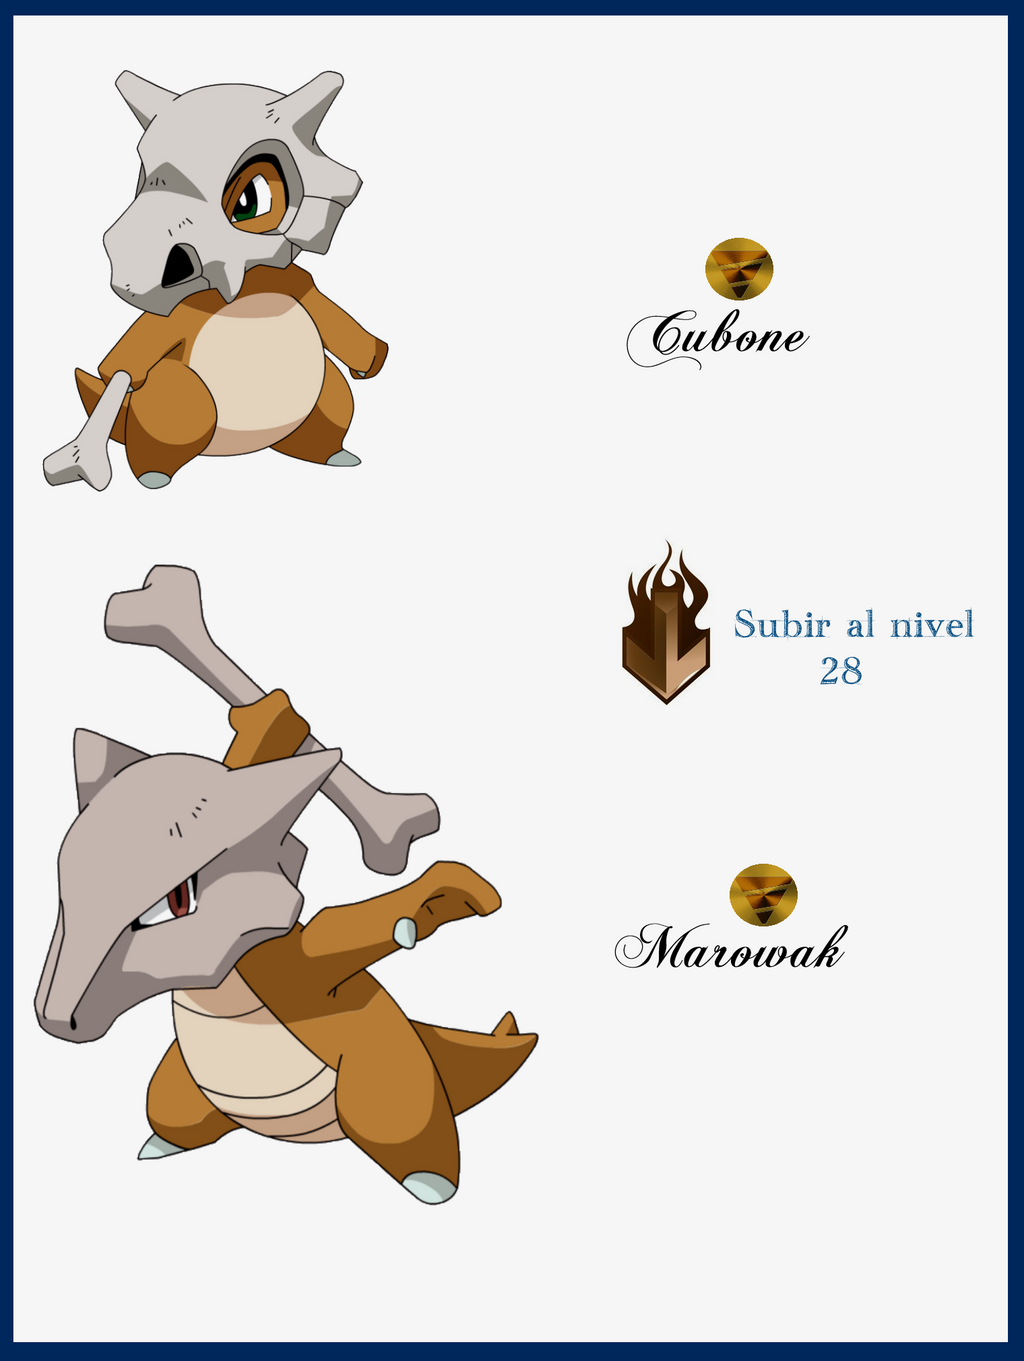 046 cubone evoluciones by maxconnery on deviantart